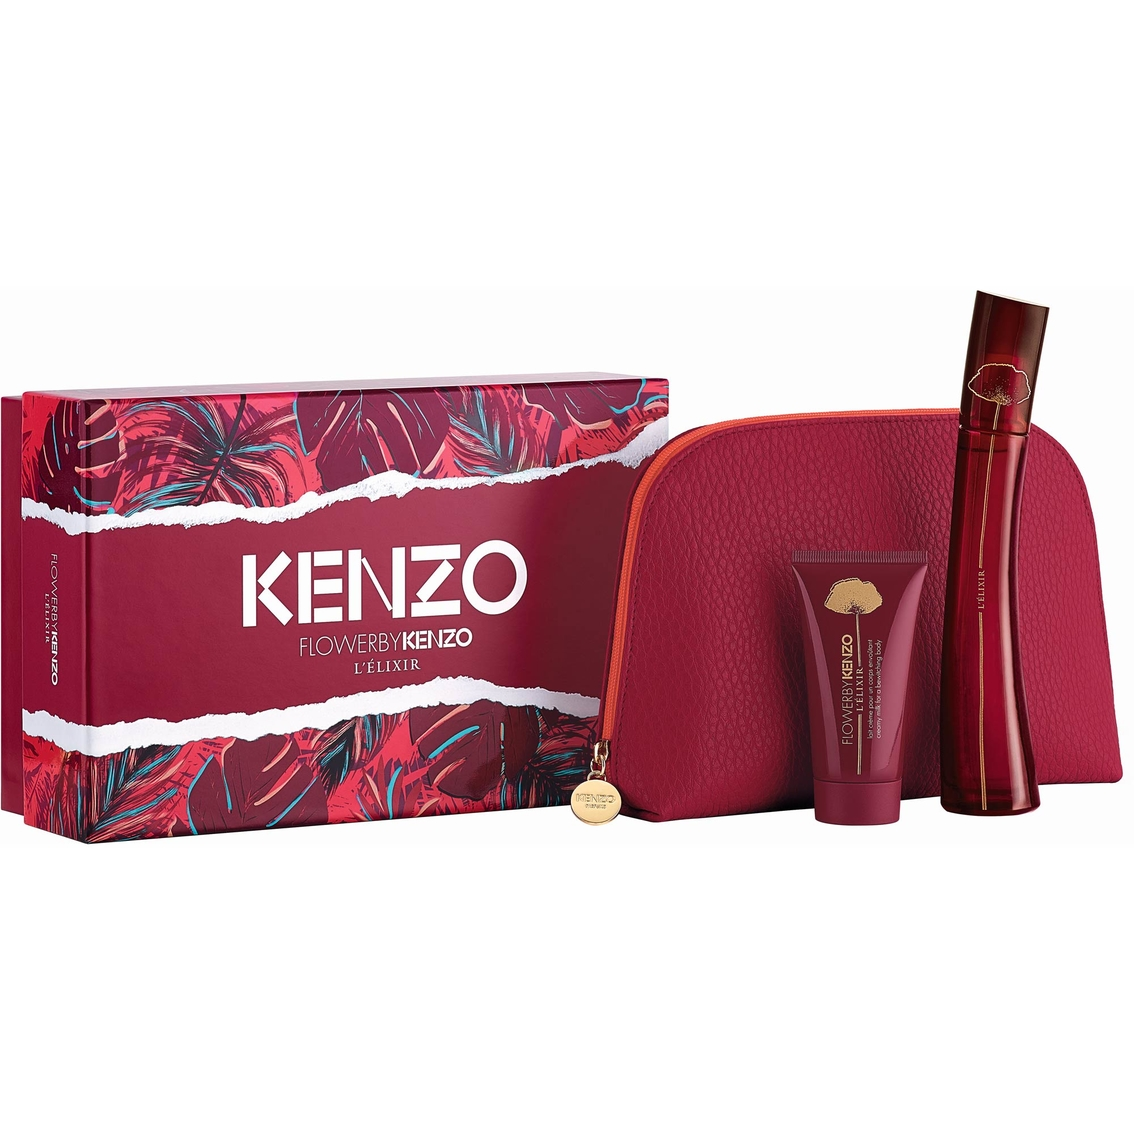 Kenzo Flower L Elixir Gift Set Flowers Healthy